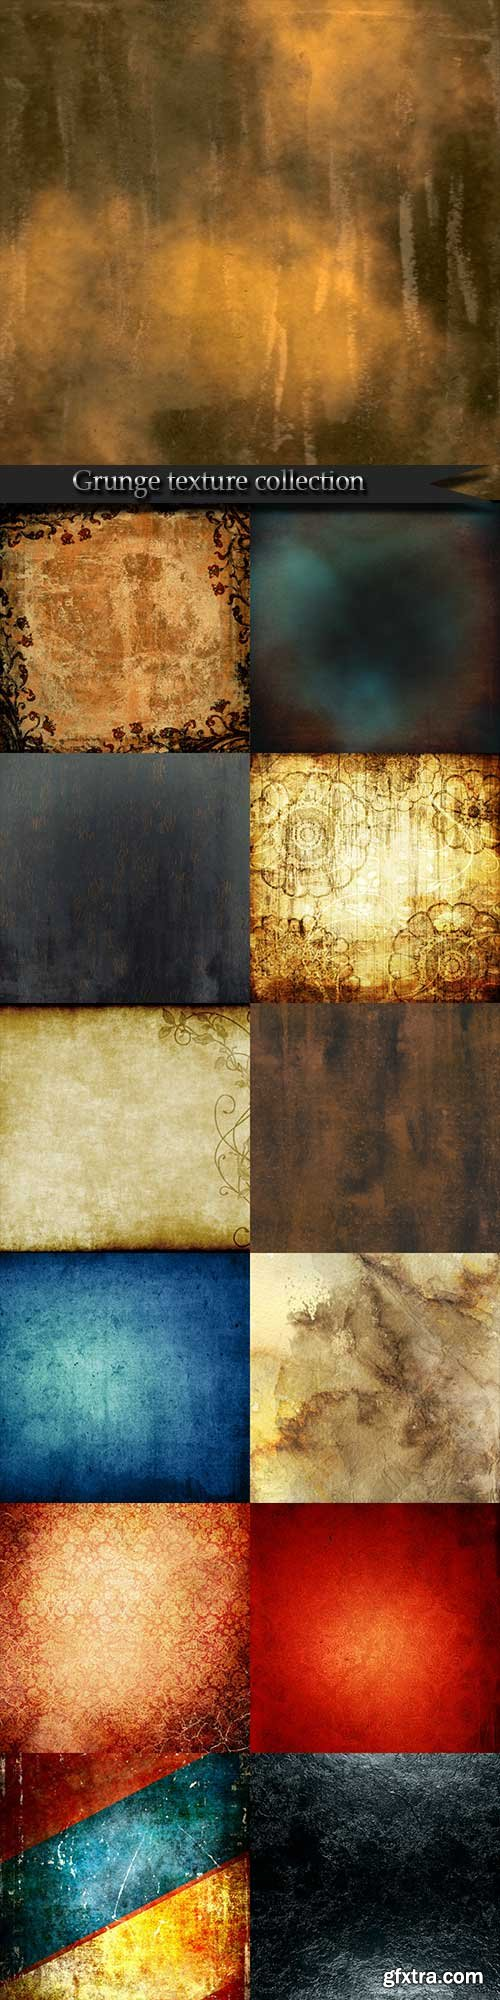 Grunge texture collection